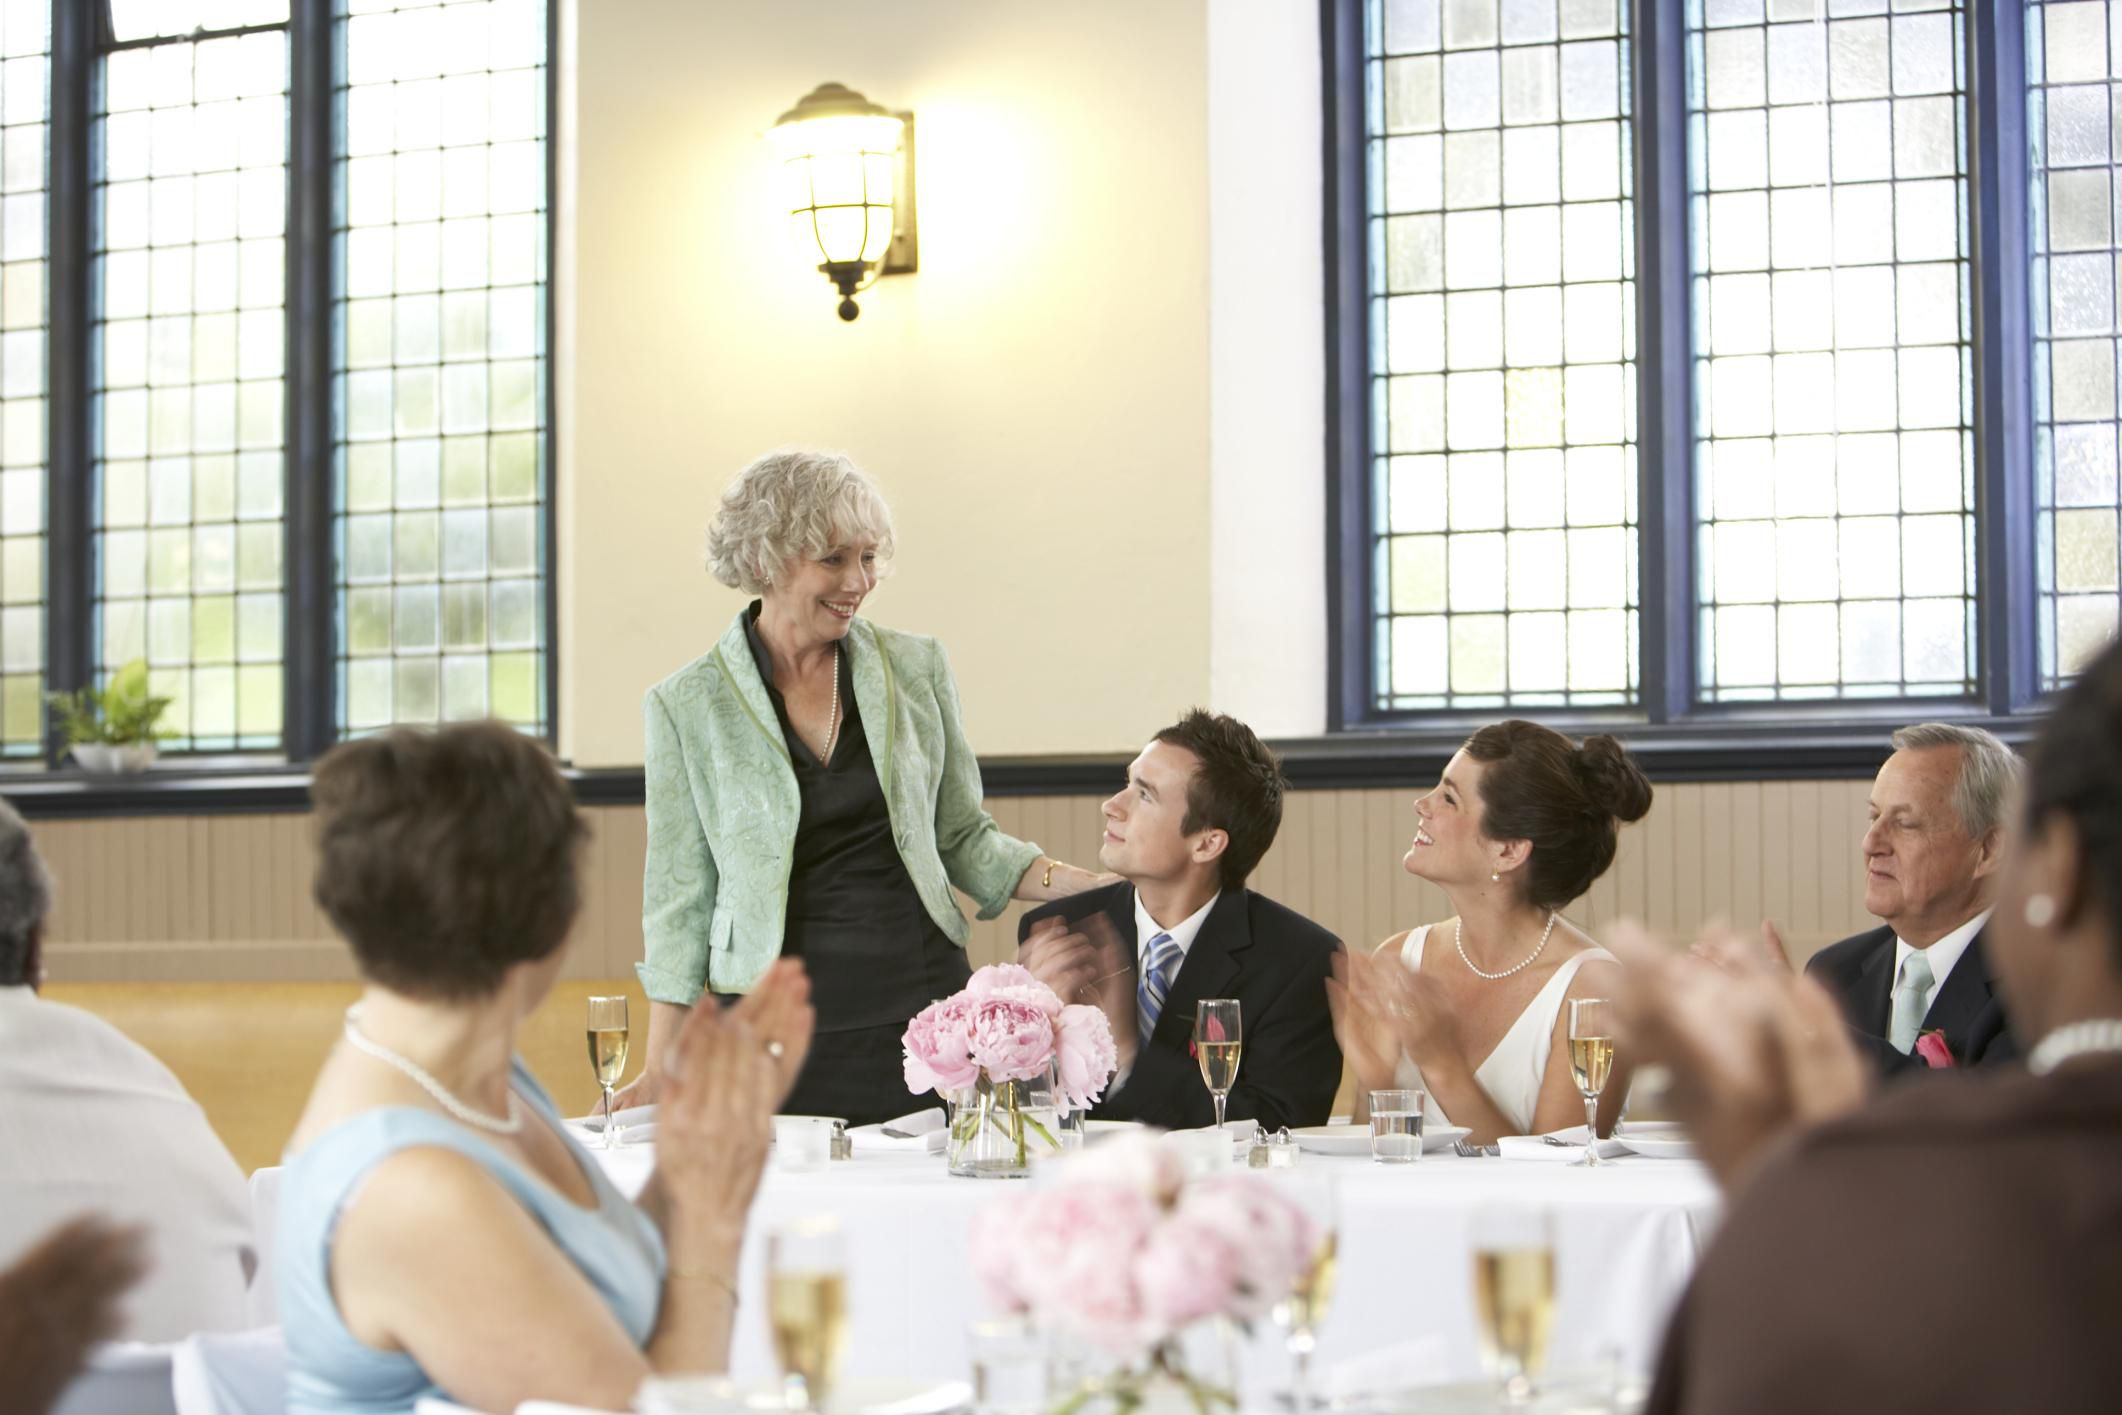 What The Mother Of The Groom Should Do In Her Role